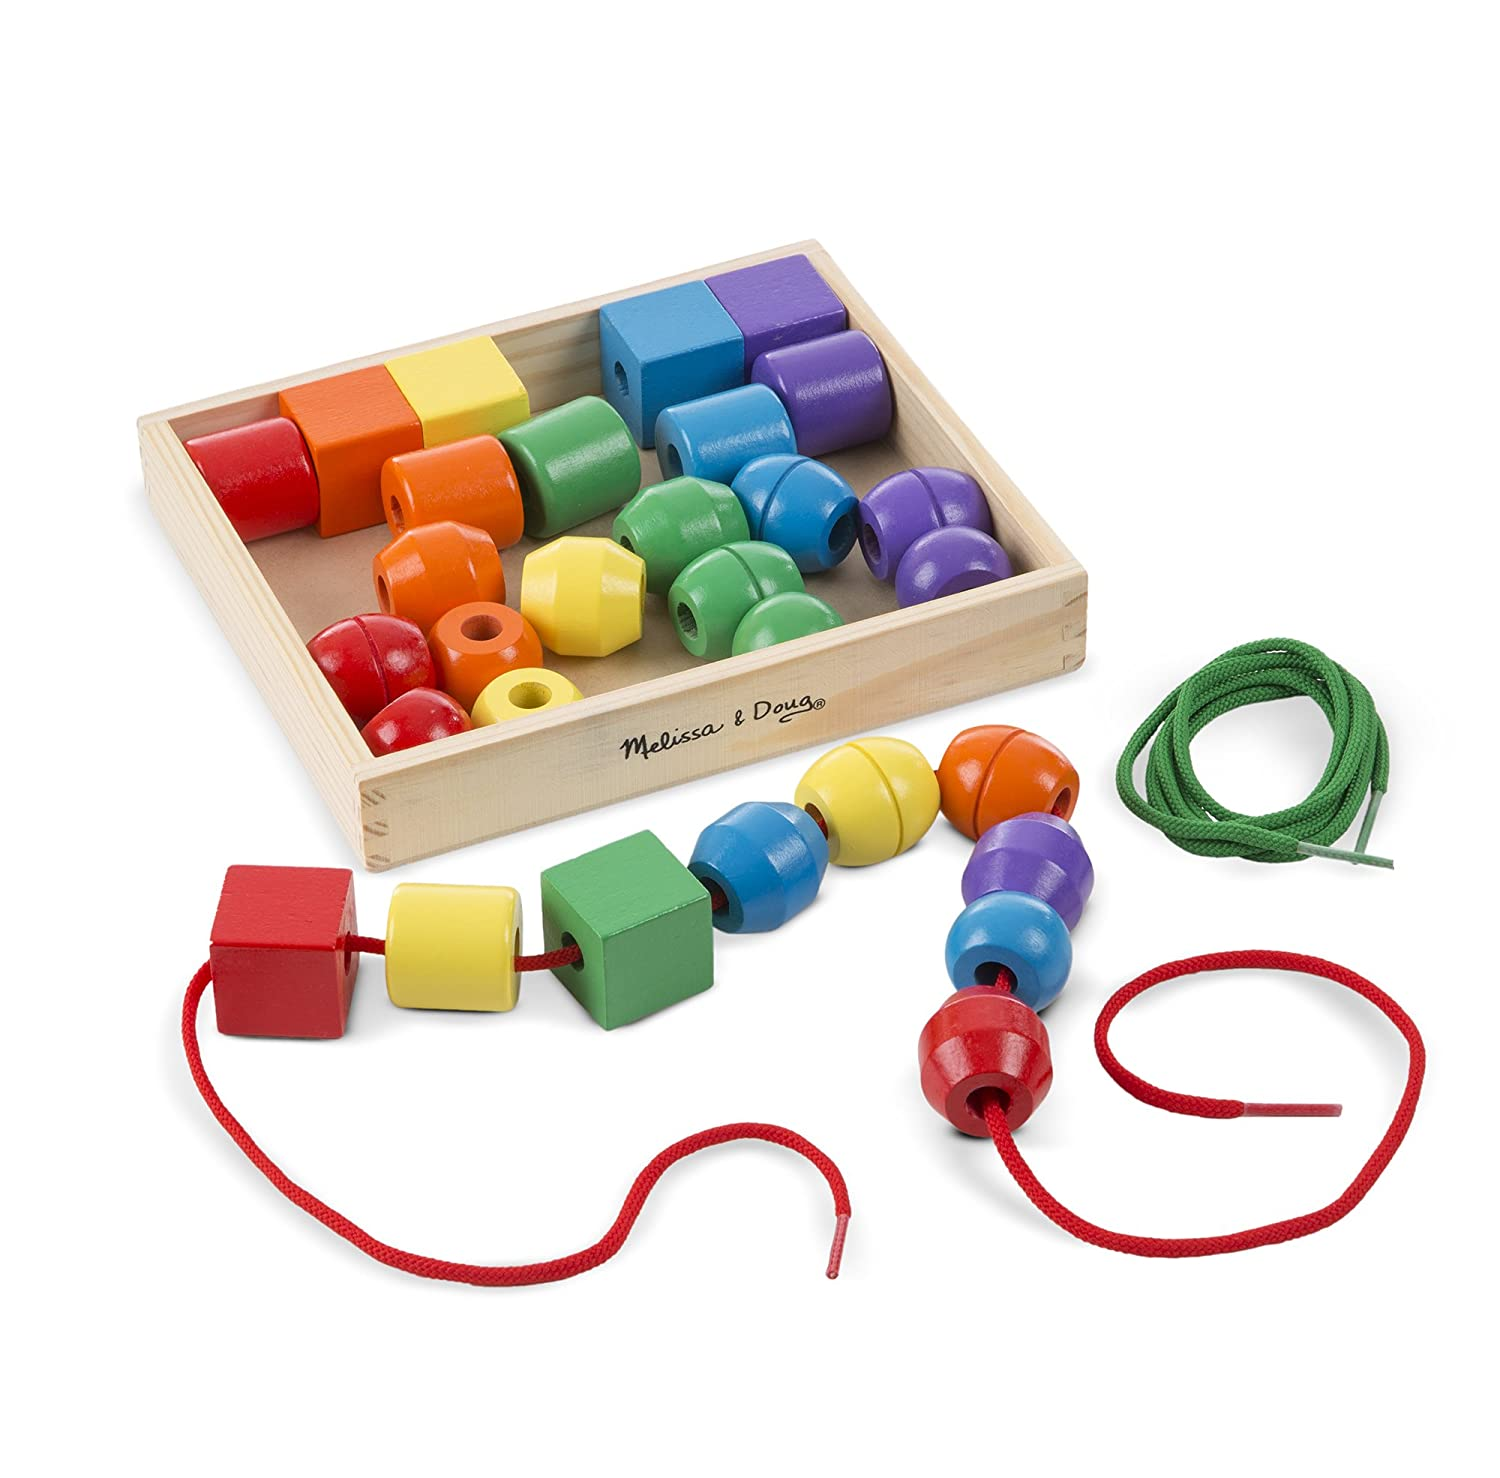 Melissa & Doug Primary Lacing Beads - Educational Toy With 30 Wooden Beads and 2 Laces James R. Aikens Melissa and Doug 544